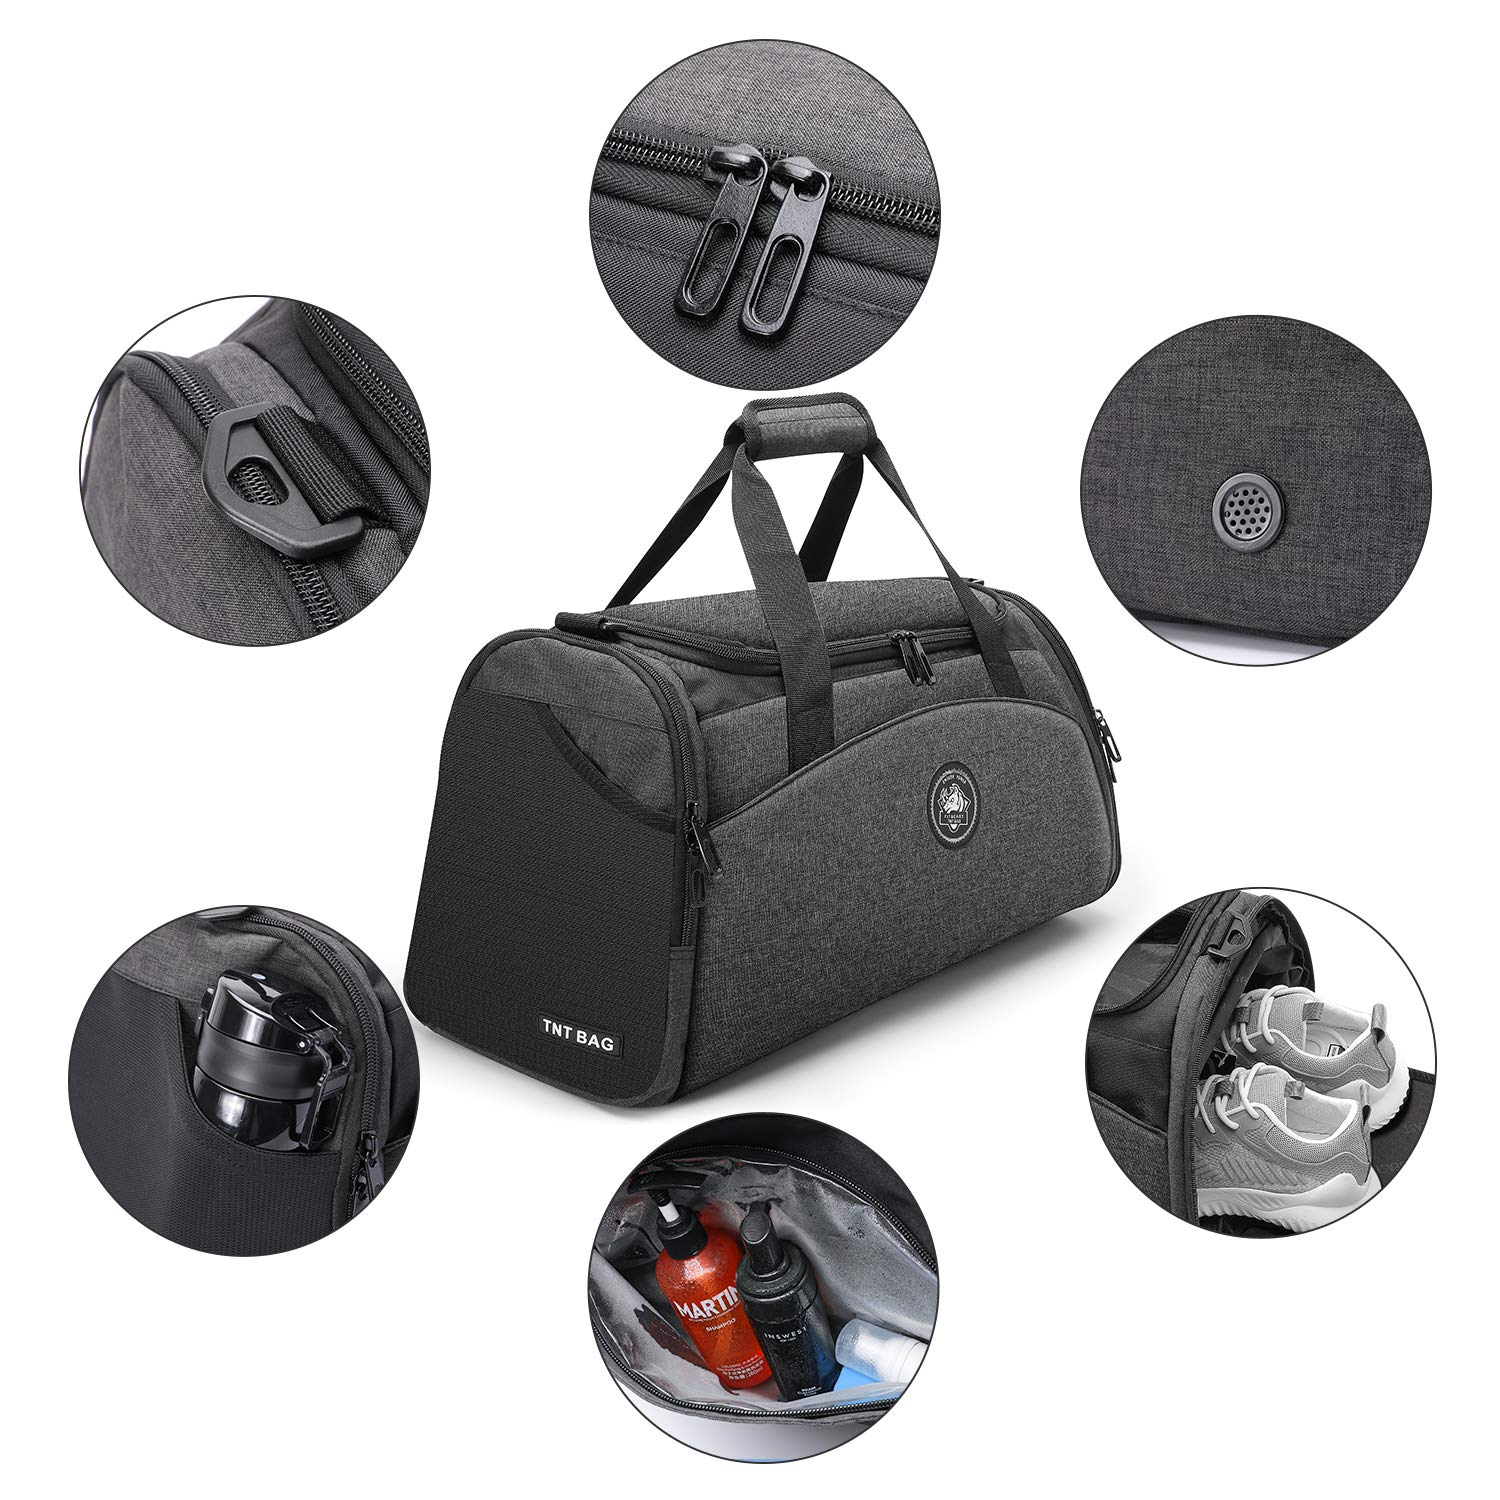 FitBeast Sports Gym Bag Duffel Bag with Shoes Compartment & Wet Pocket, Travel Duffel Bag with 9 Compartments for Men & Women, Big Capacity Holdall with Shoulder Strap for Gym, Sports, Travel, Swimming